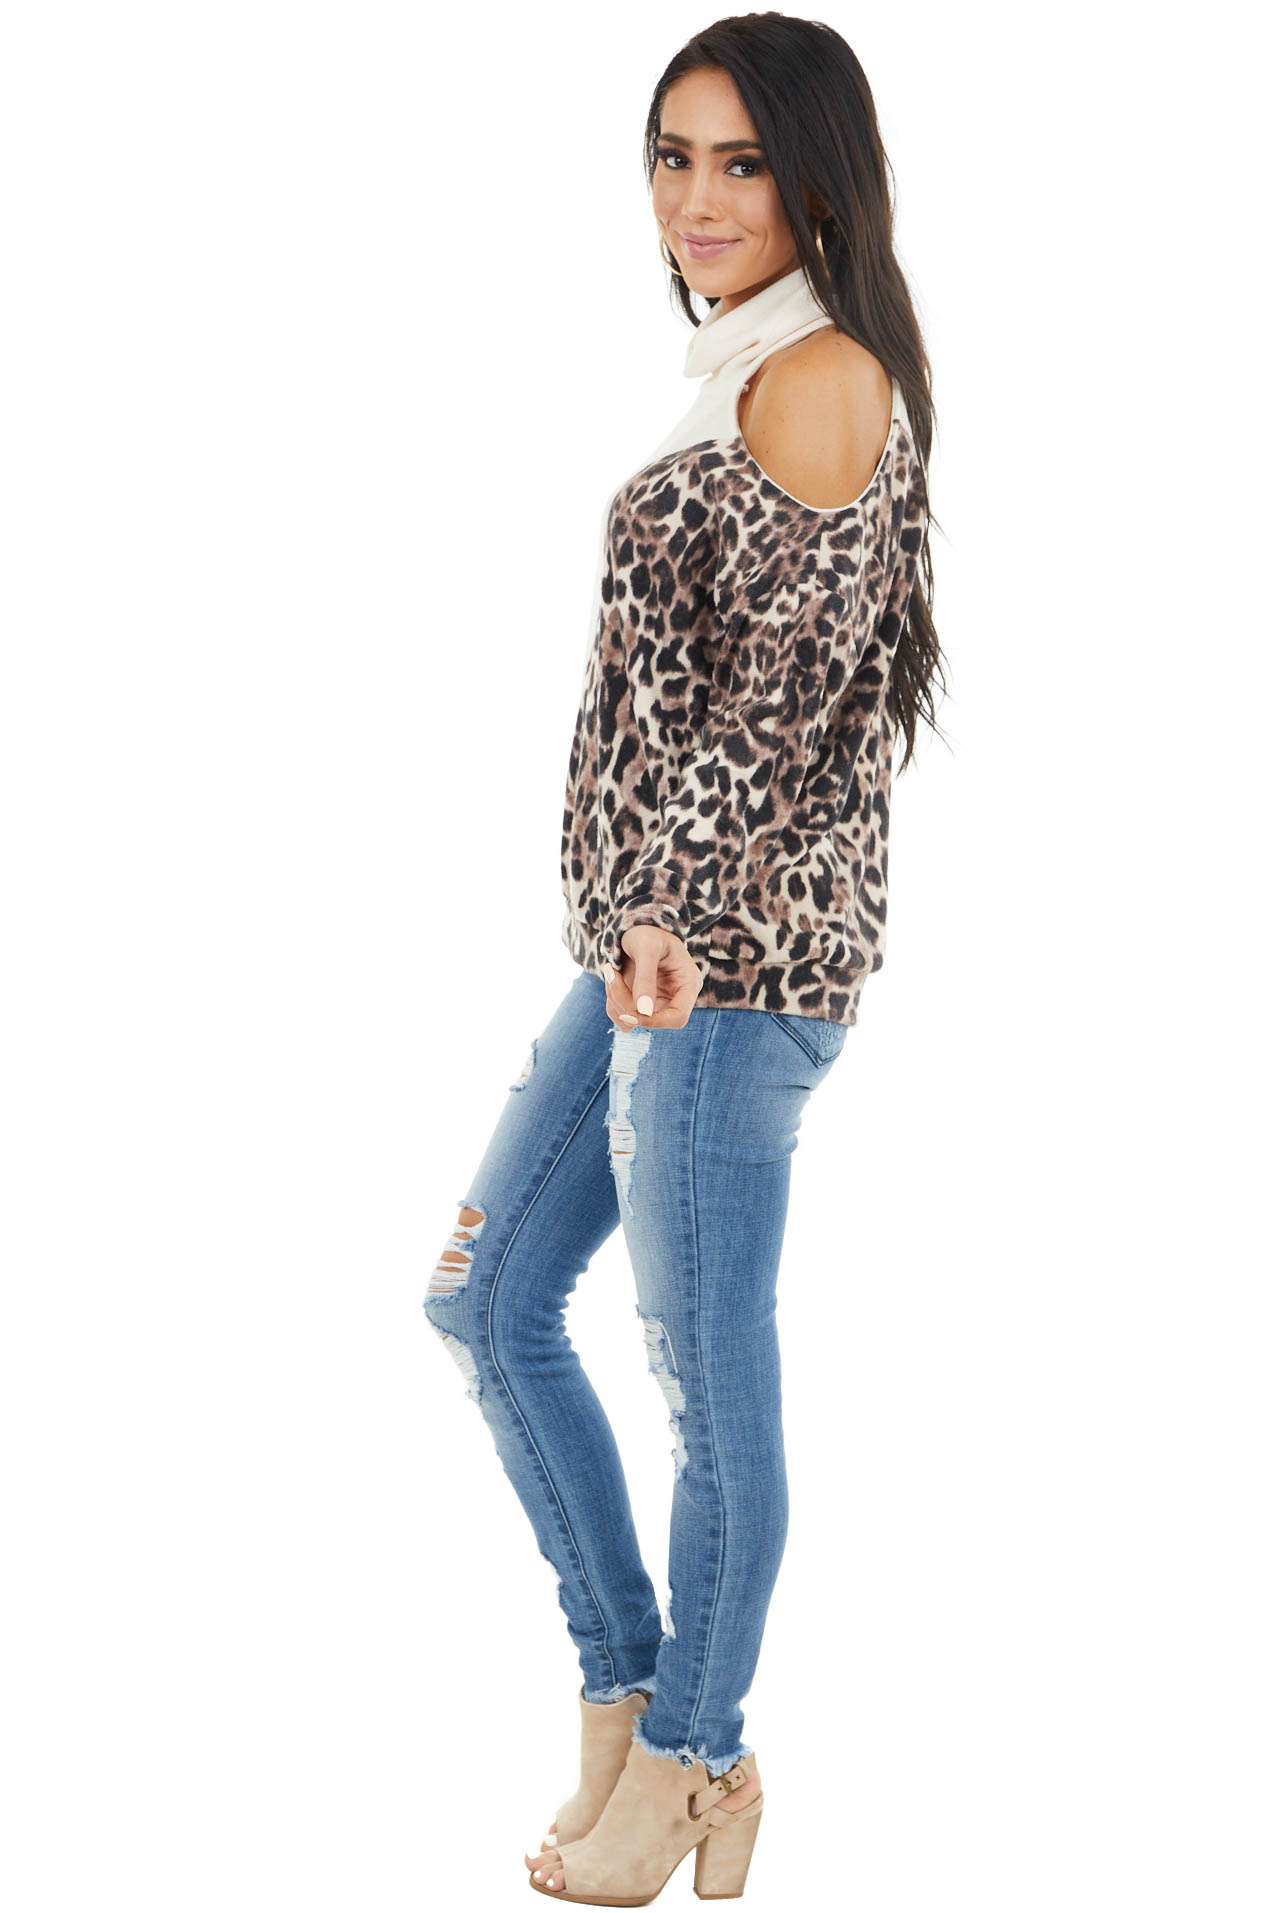 Cream and Leopard Print Top with One Cold Shoulder